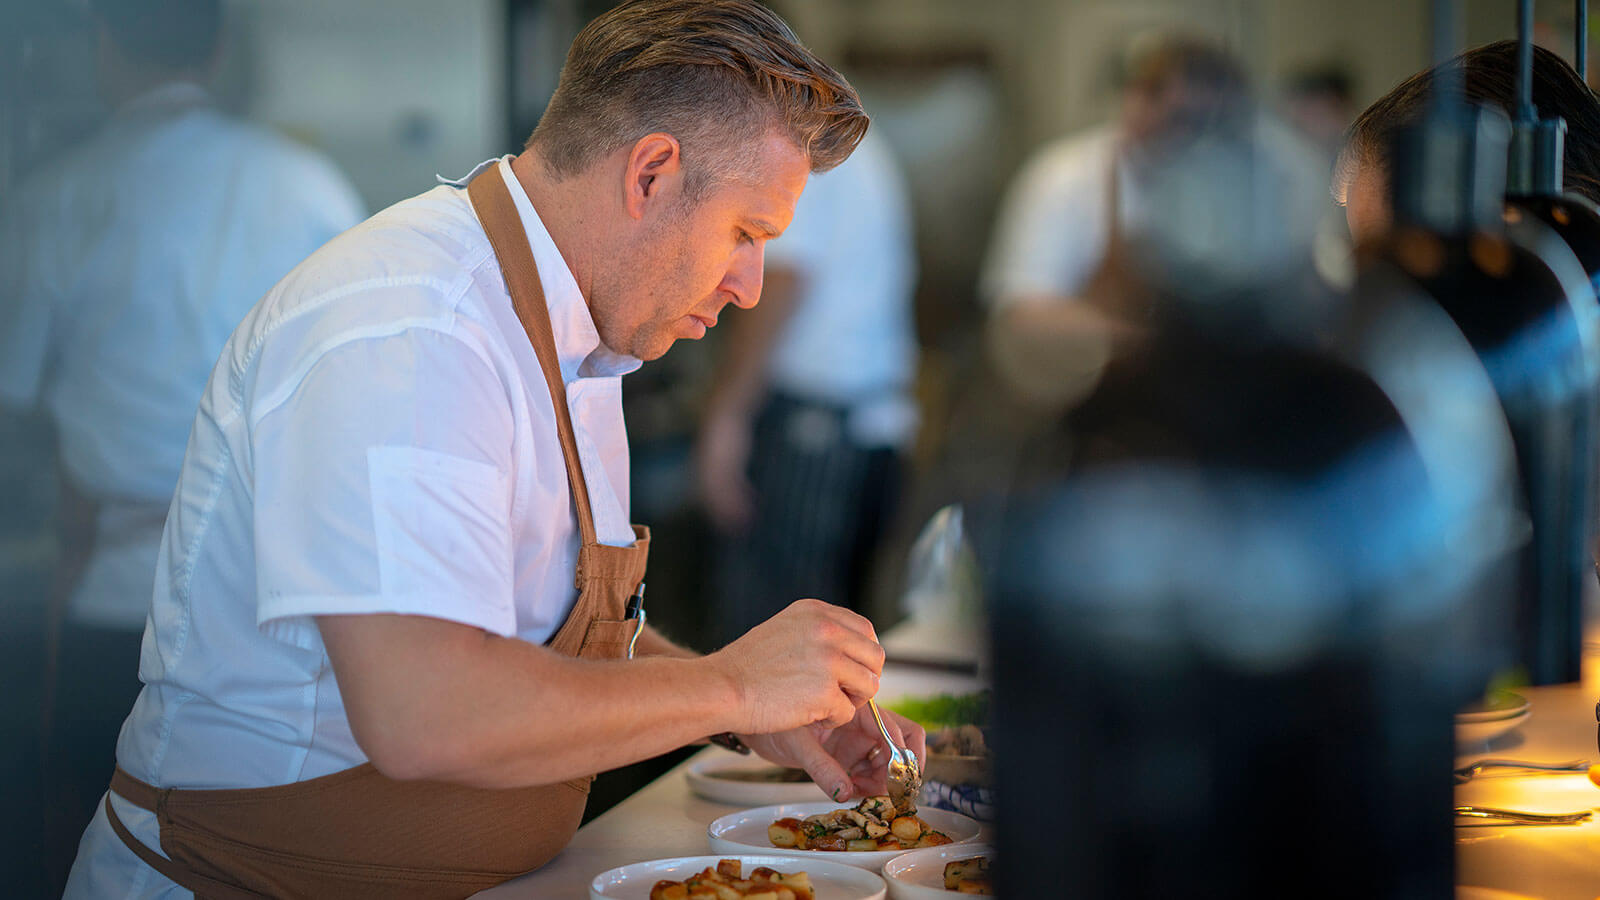 Grain of the  Silos